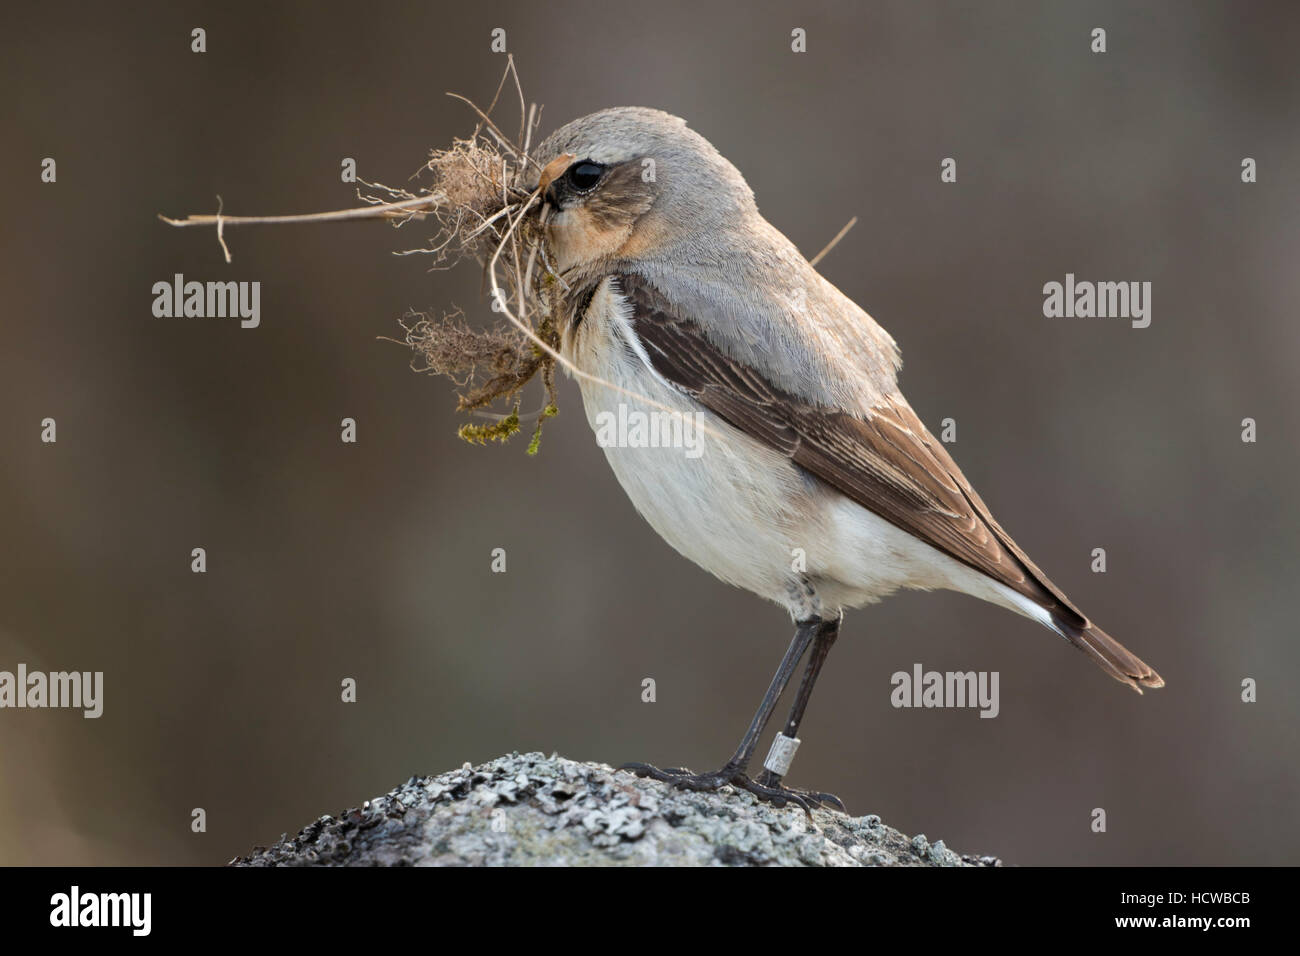 Northern Wheatear / Steinschmaetzer ( Oenanthe oenanthe ) carrying nesting material in its beak, perched on a rock. Stock Photo